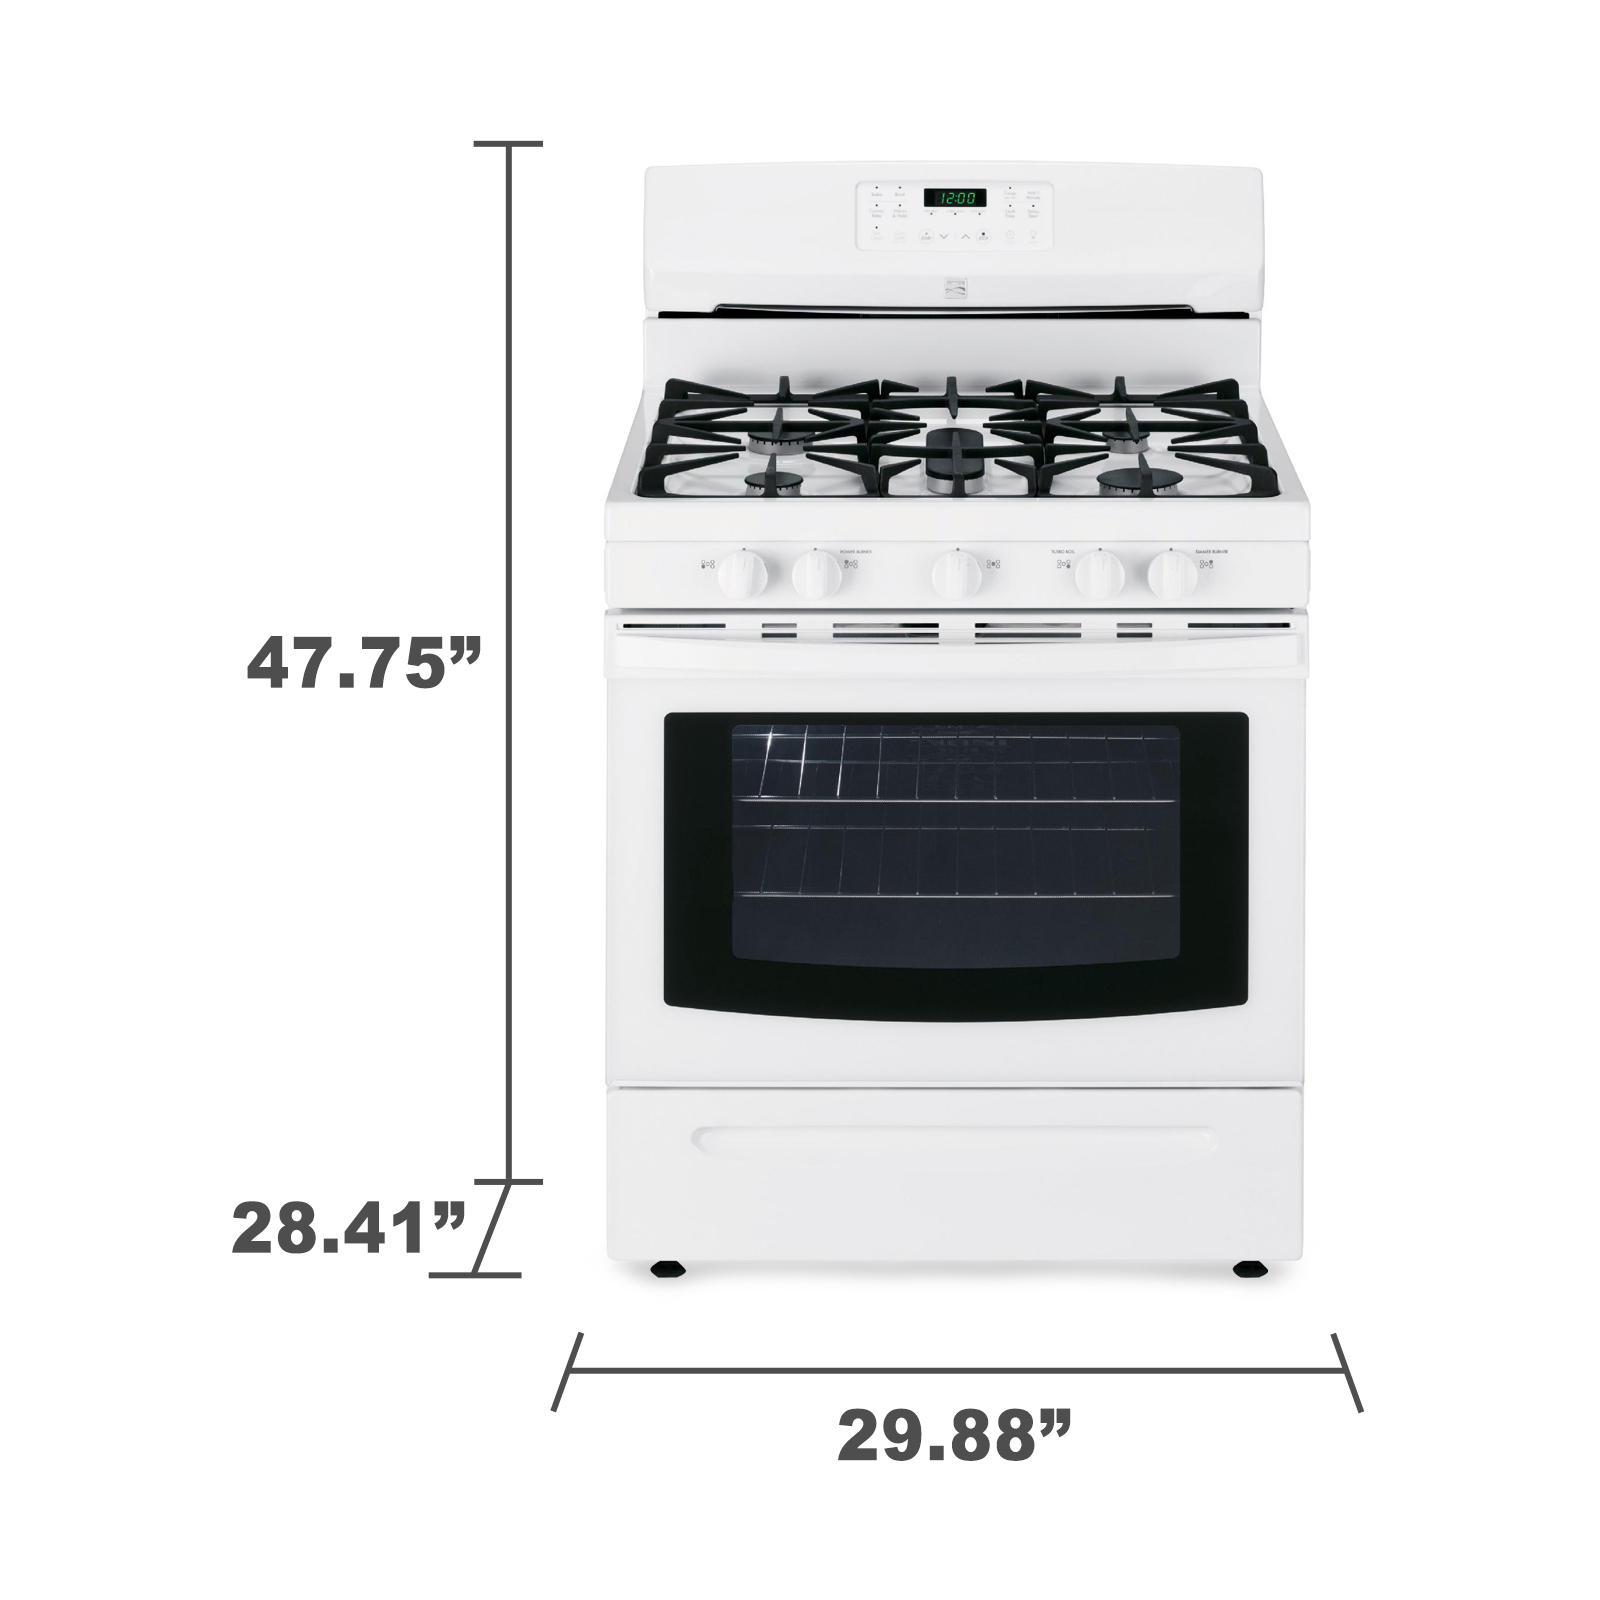 Kenmore 74232 5.0 cu. ft. Freestanding Gas Range w/ Convection - White